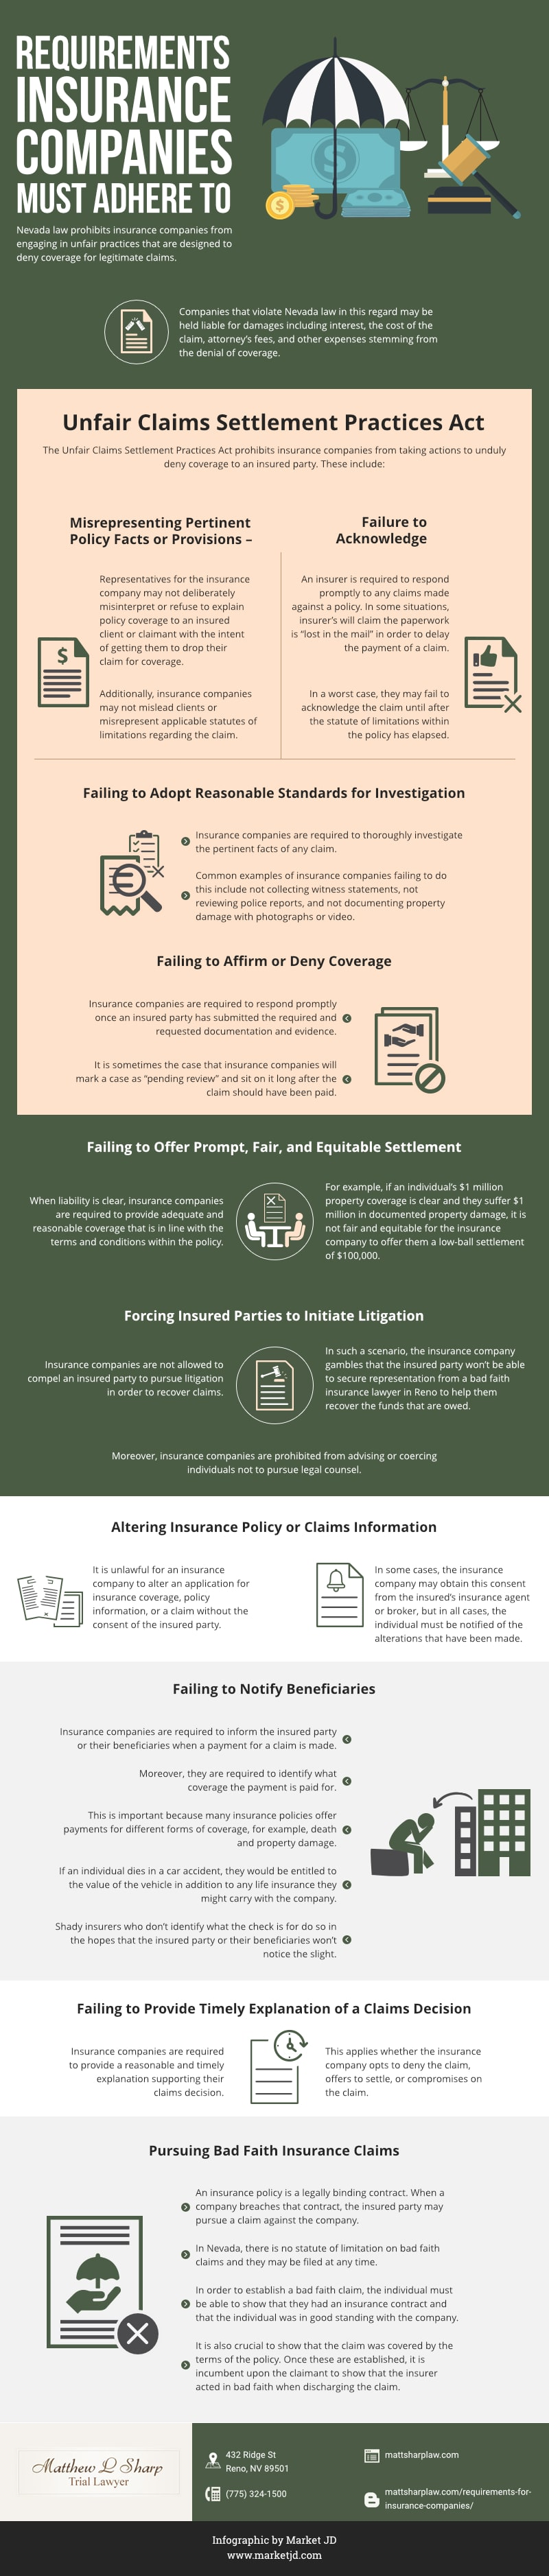 Insurance Company Requirements_bad faith insurance lawyer reno_infographic